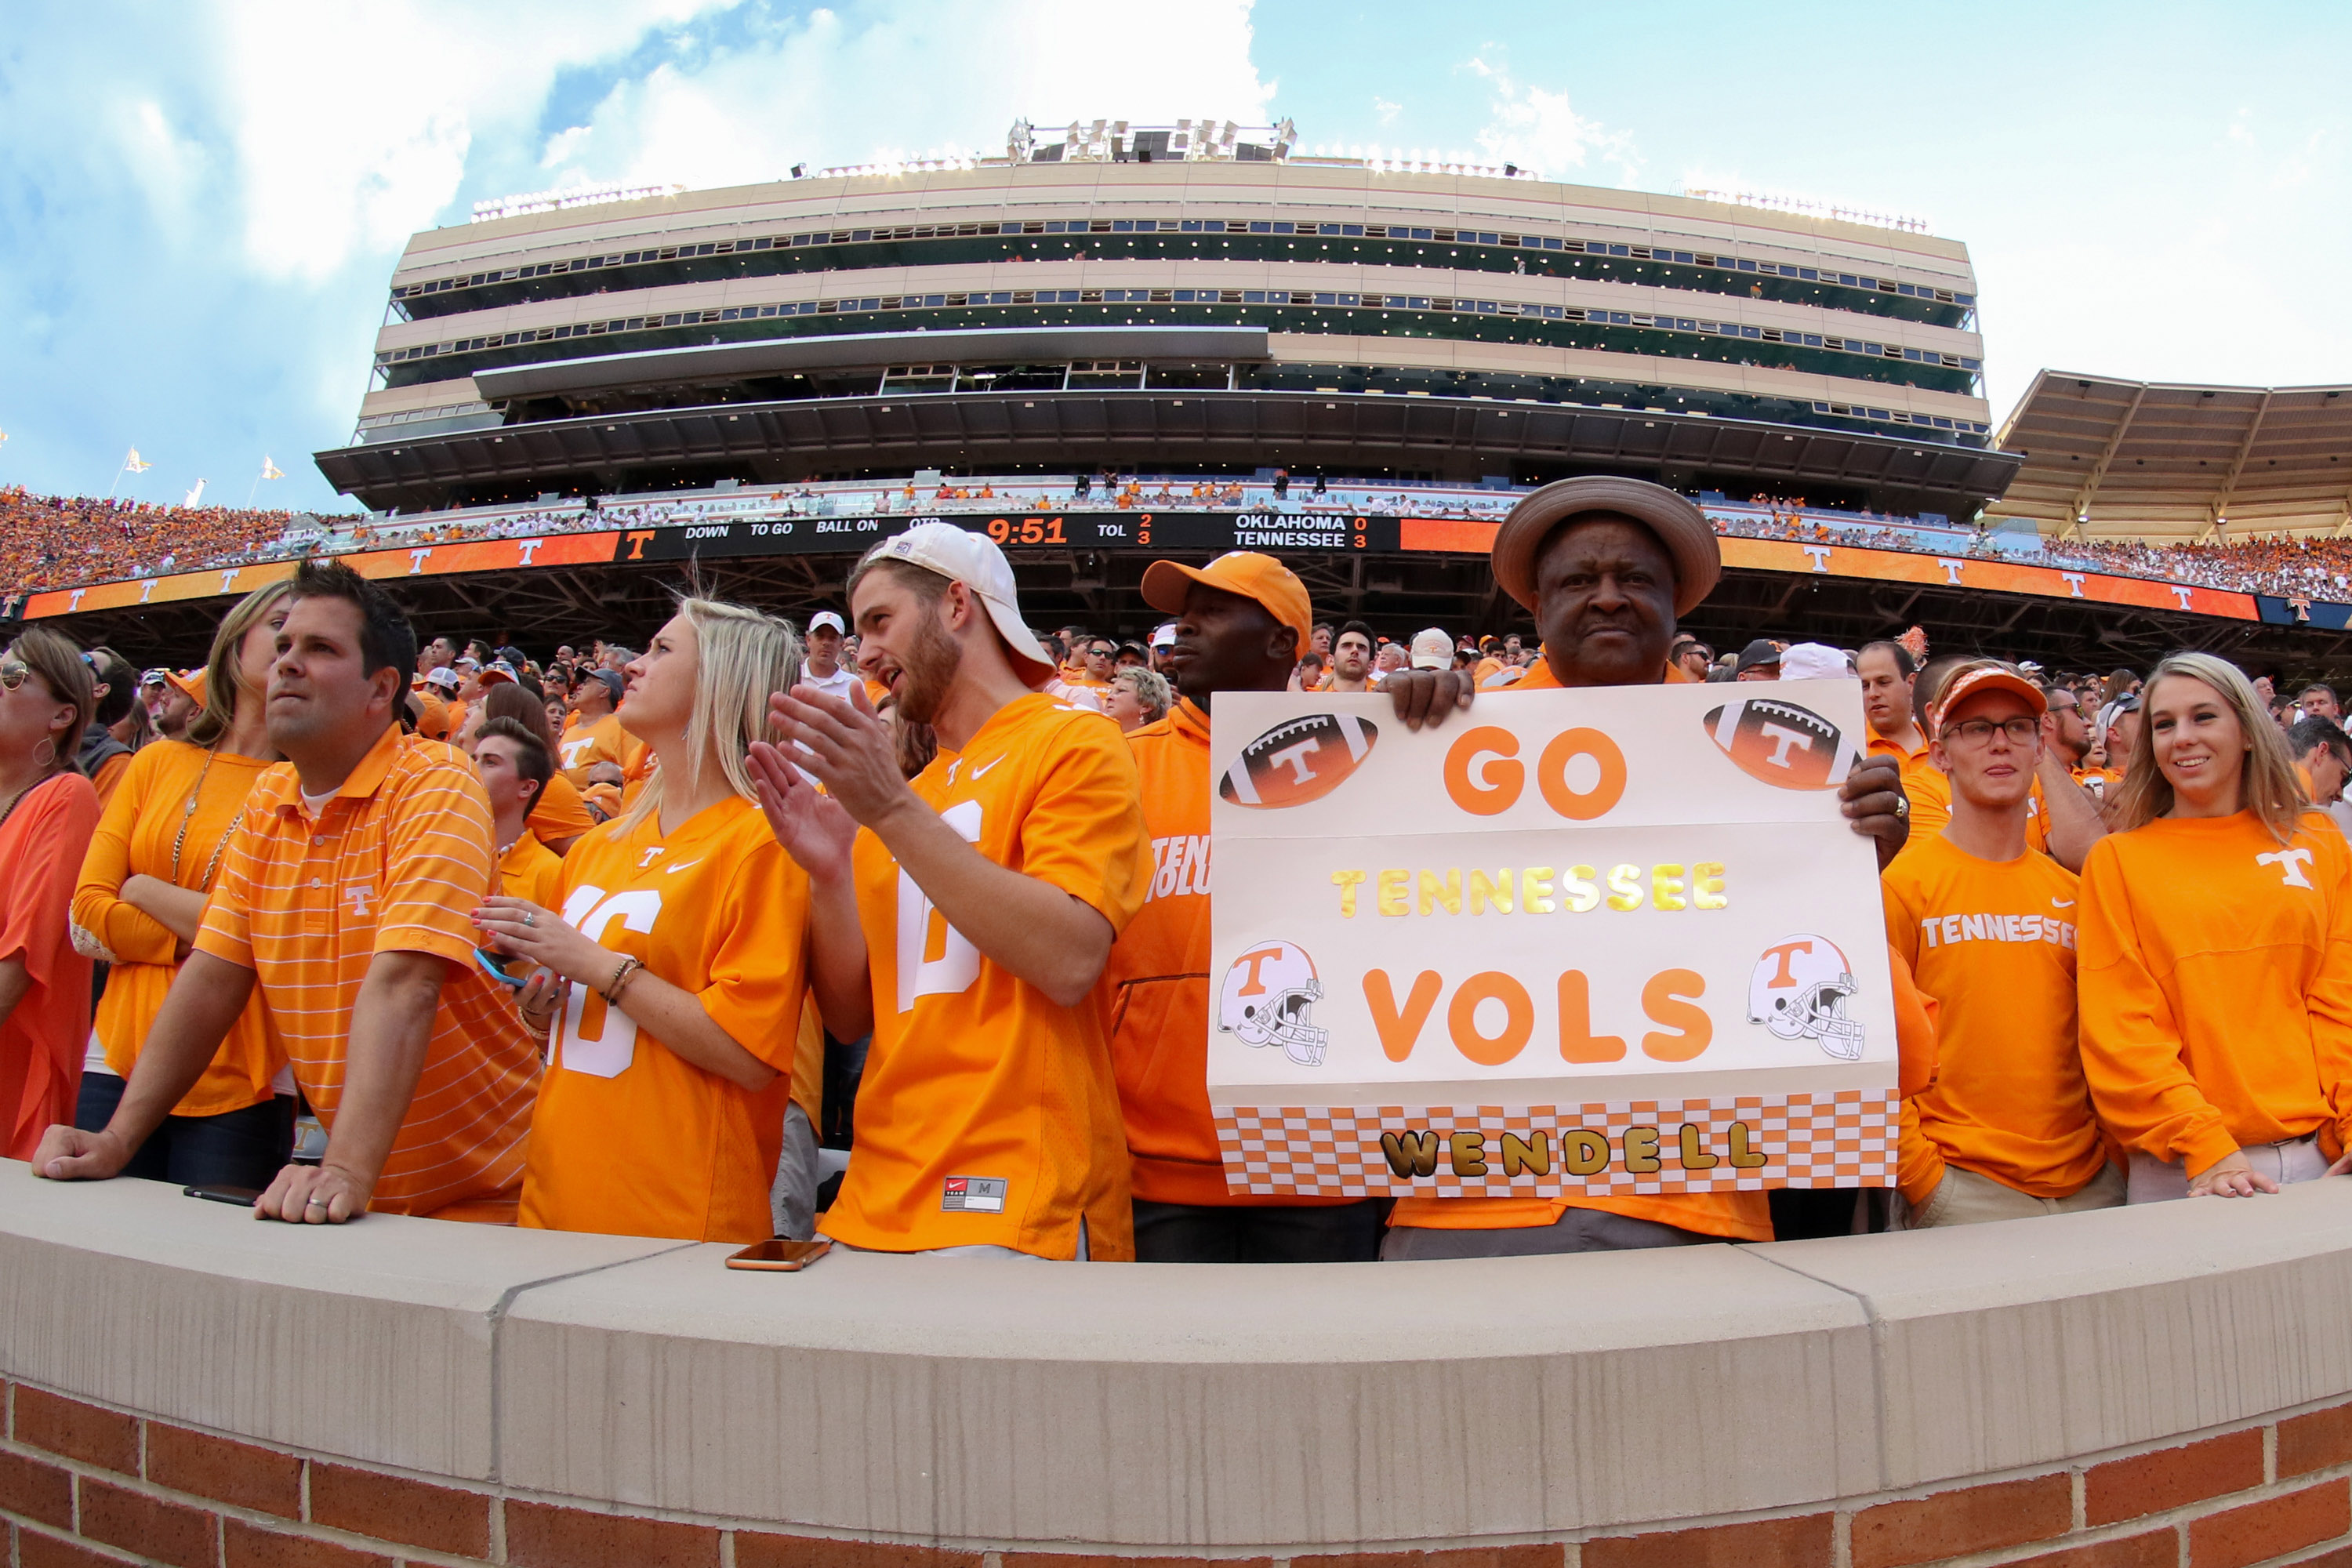 Tennessee announces 2020 opponent